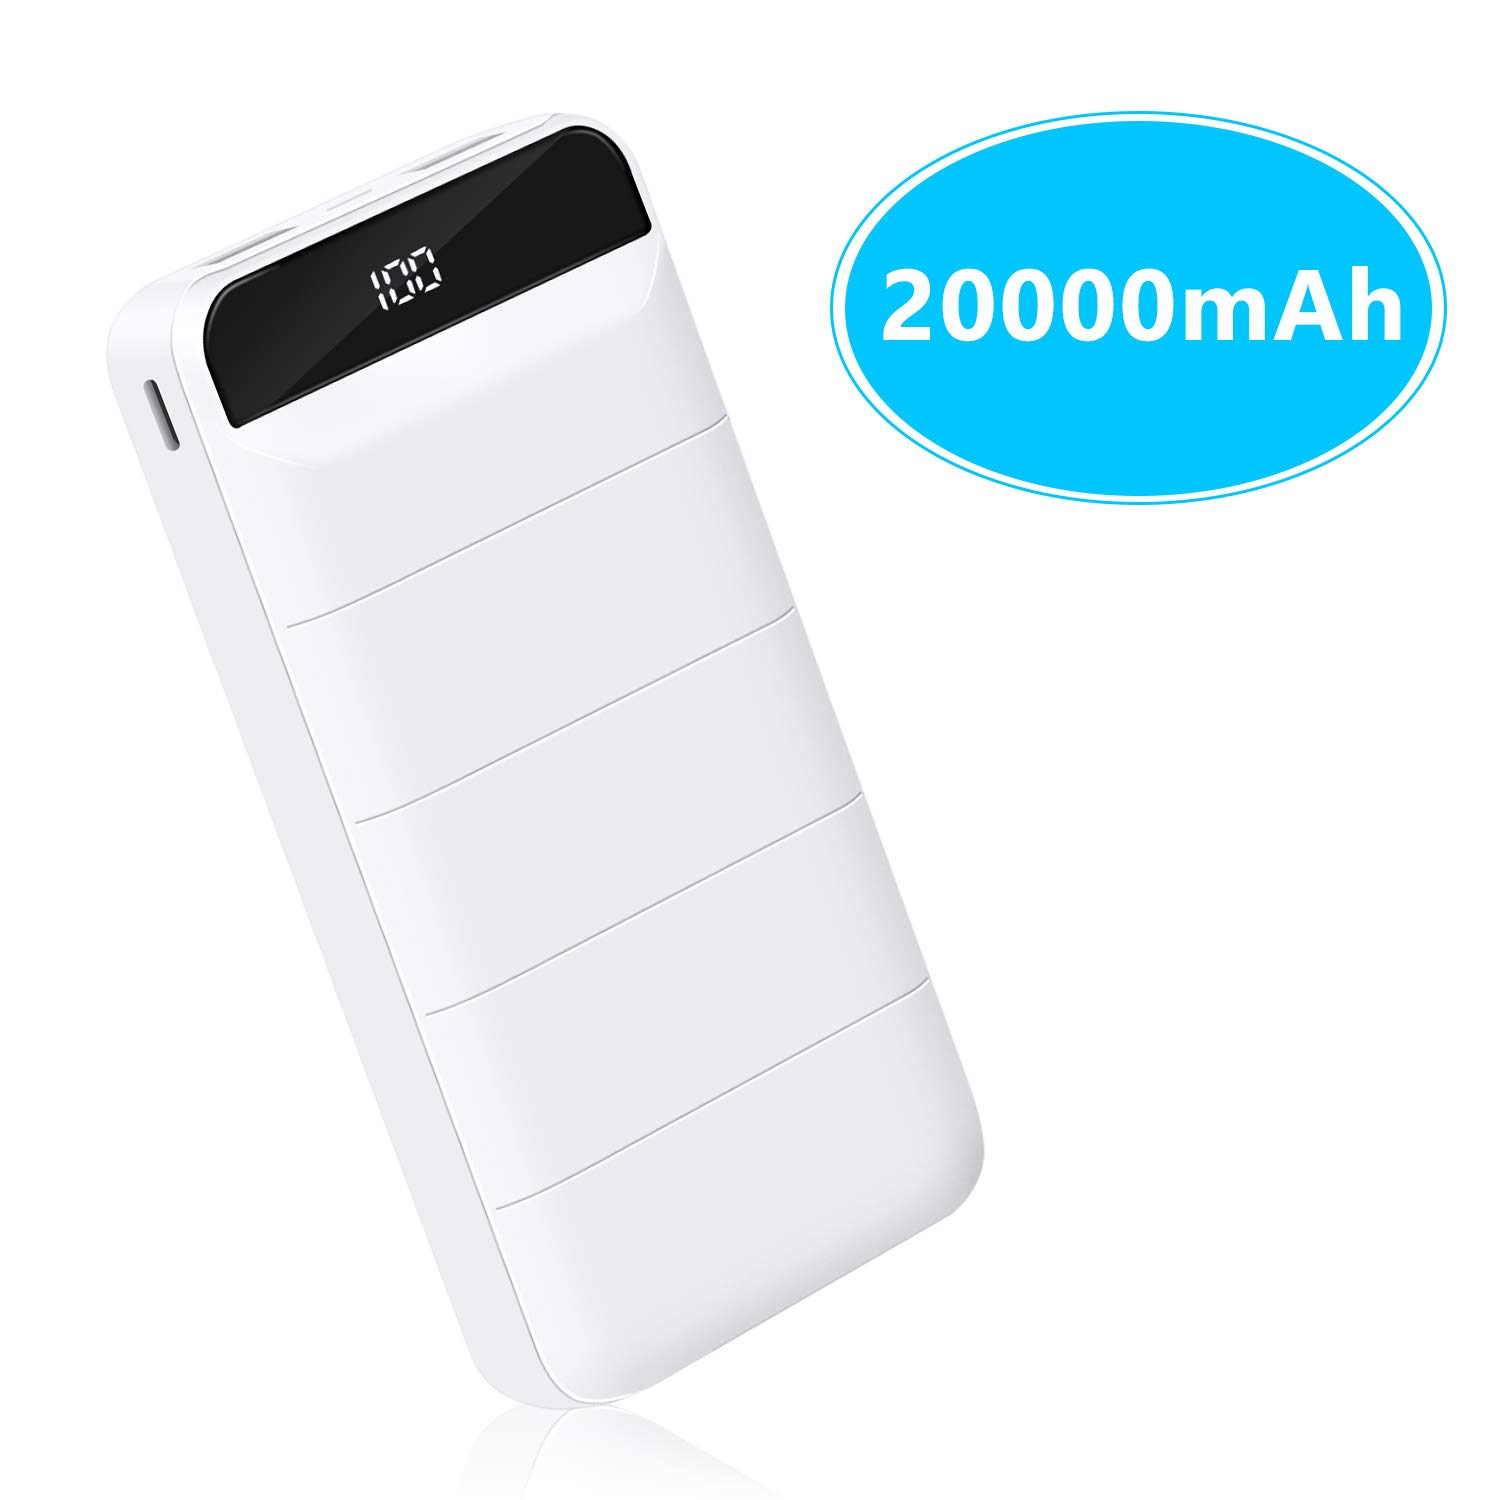 Power Bank 20000mAh High Capacity External Battery Power Bank with Smart Digital LED Display, Dual USB Output & Input Portable Charger for iPhone/iPad/Samsung and More (White) by BeeFix